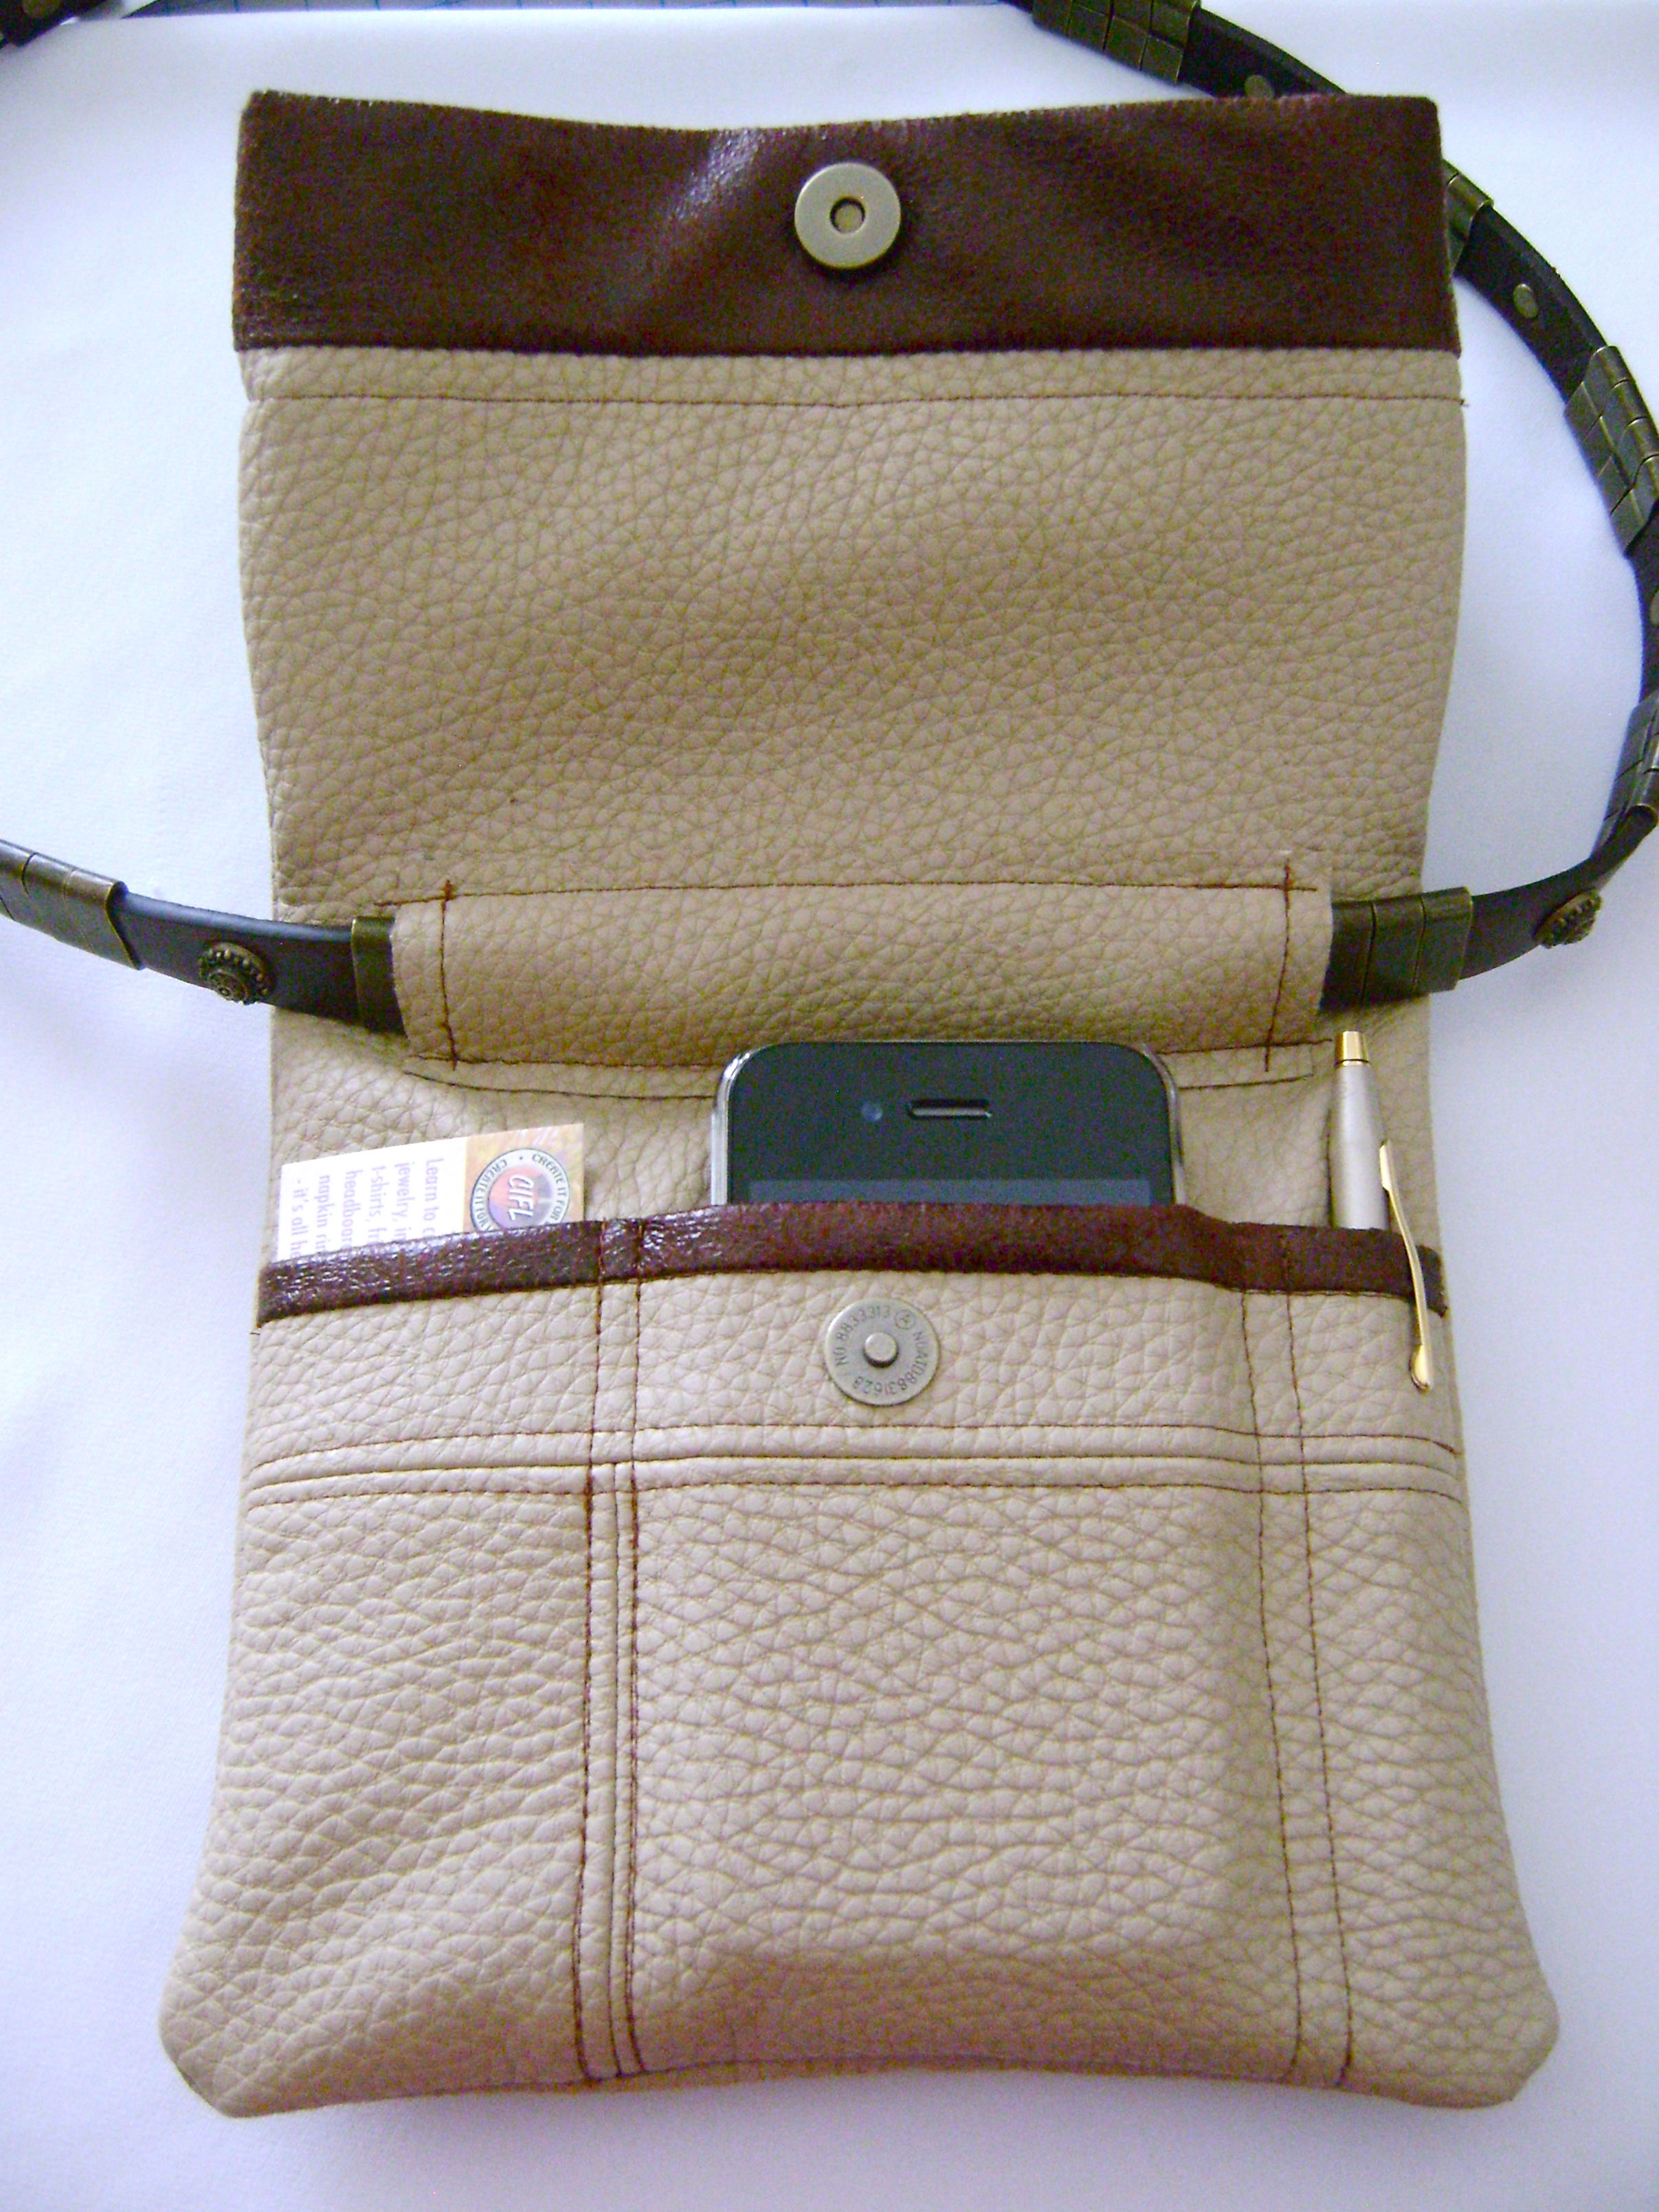 The Little Belt Bag